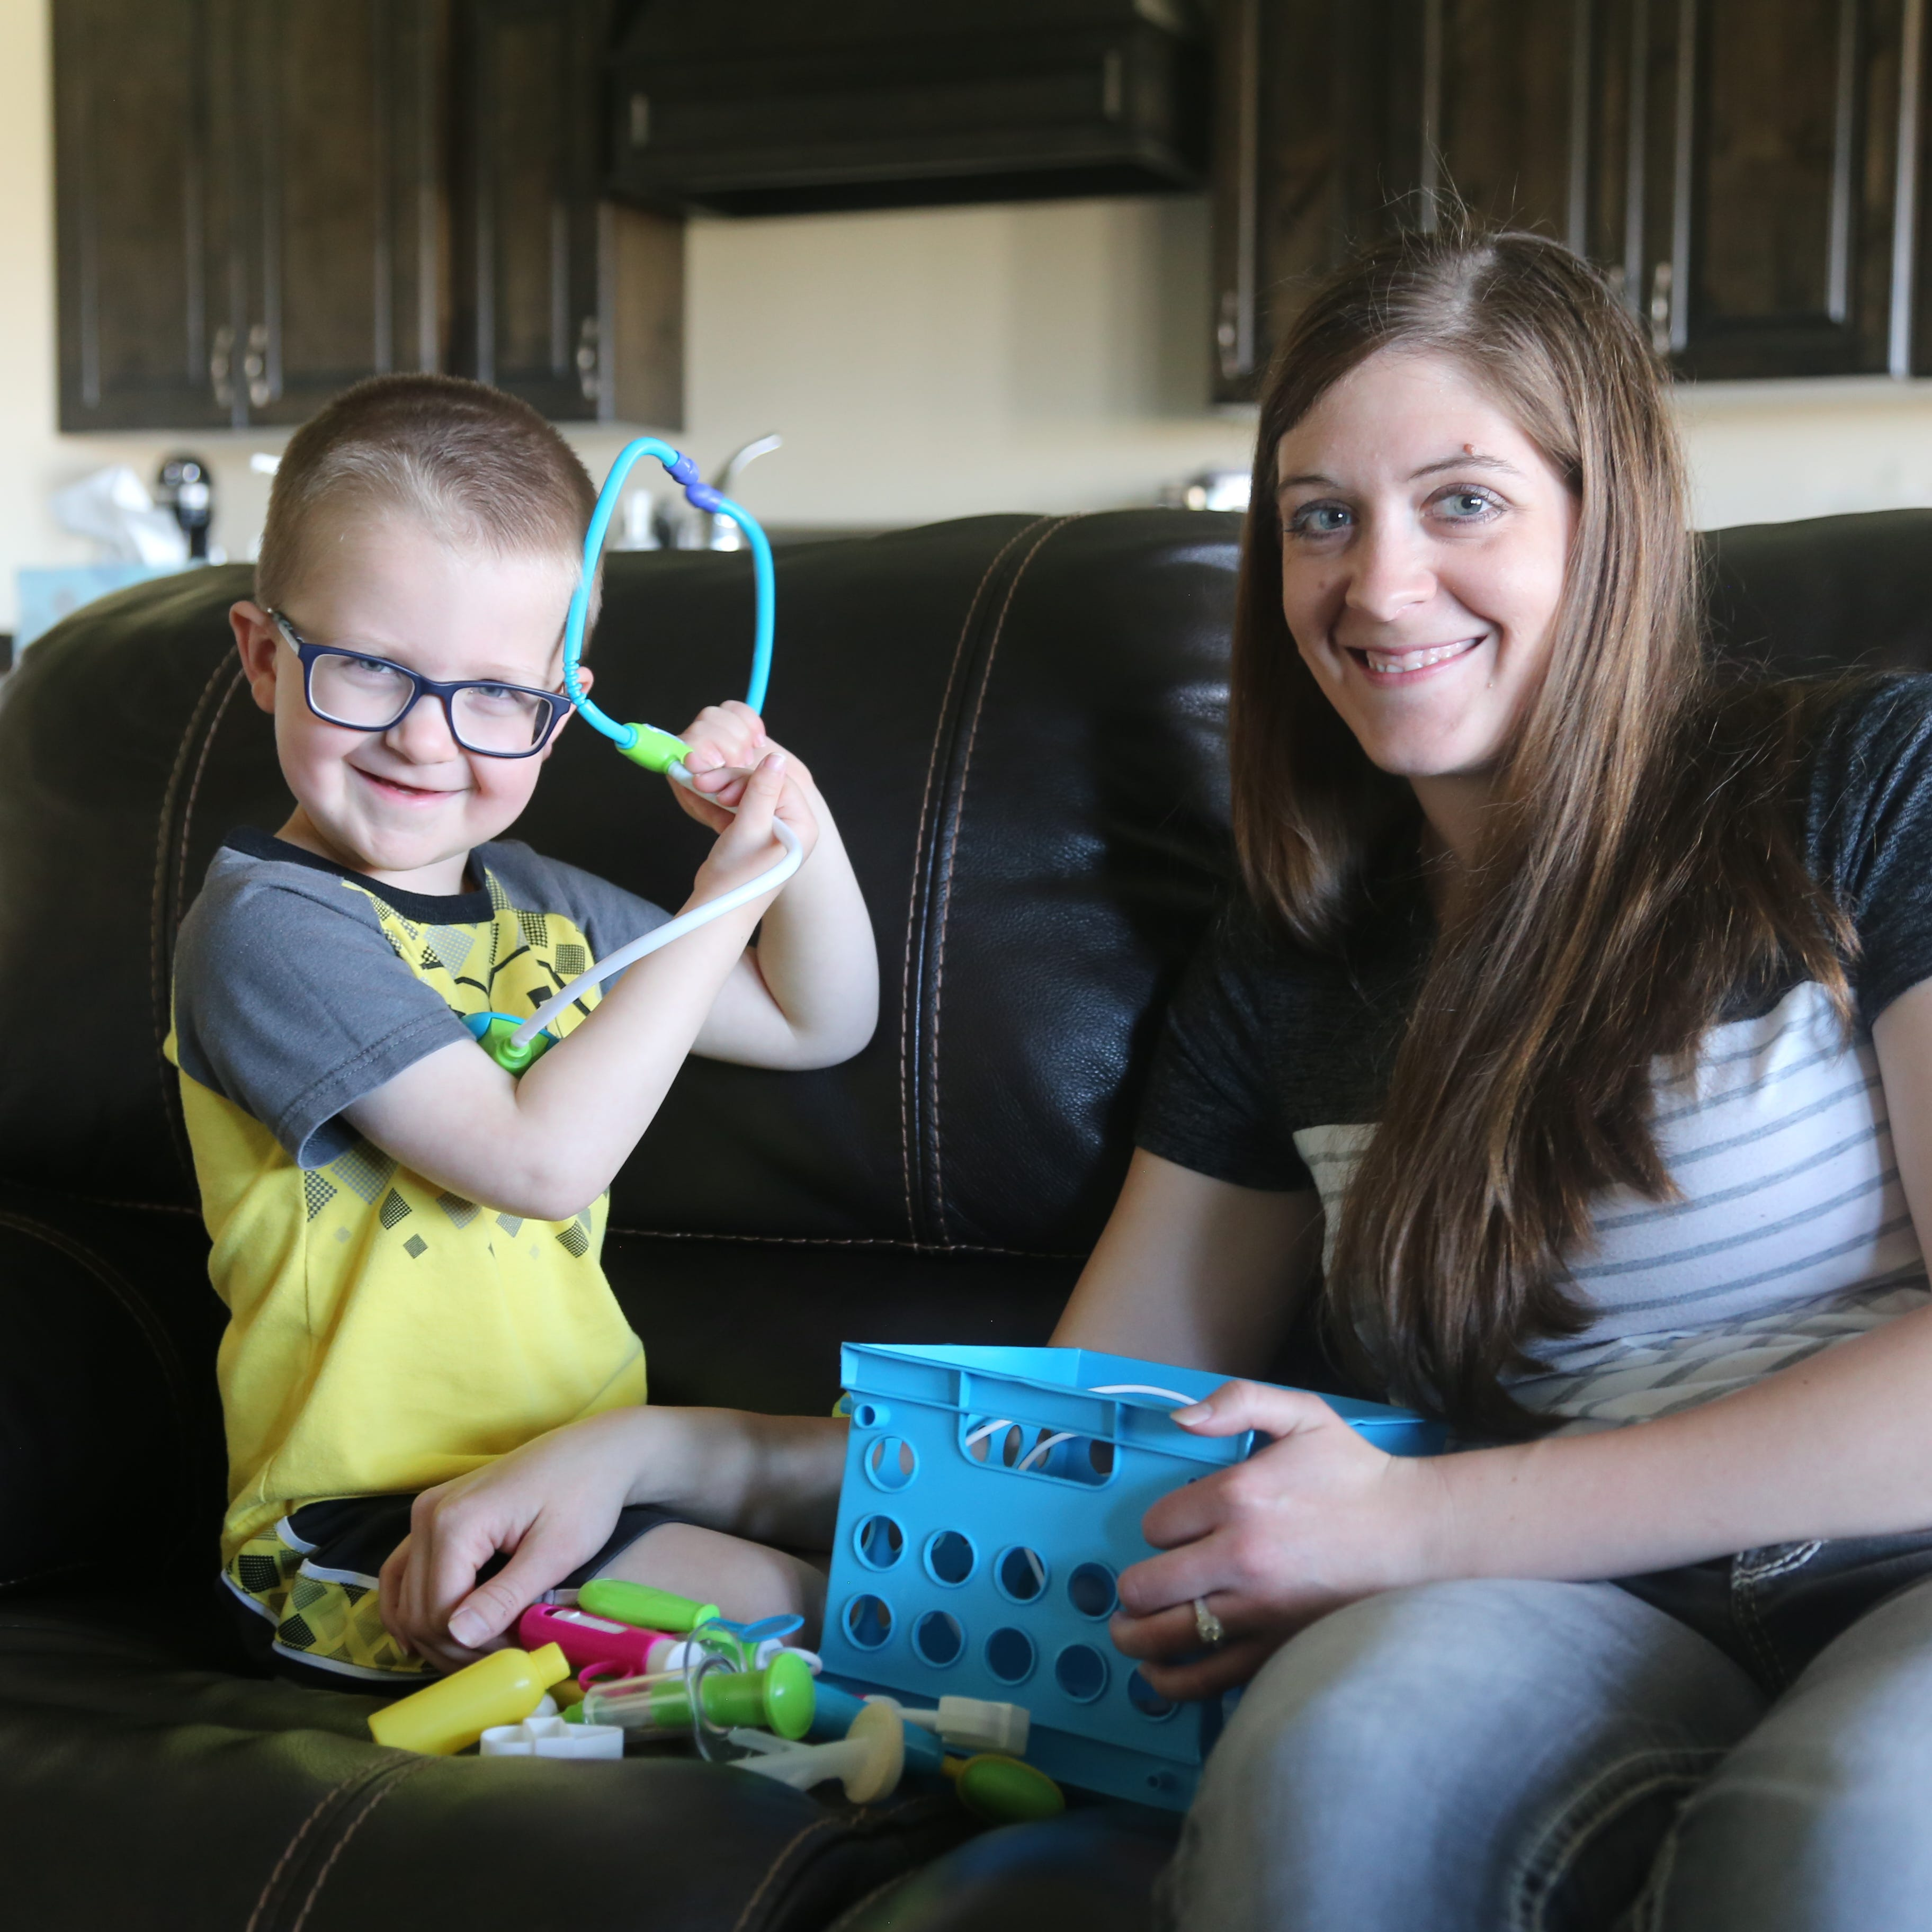 Snow Canyon students go 'all in' to grant the wish of a 3-year-old leukemia patient